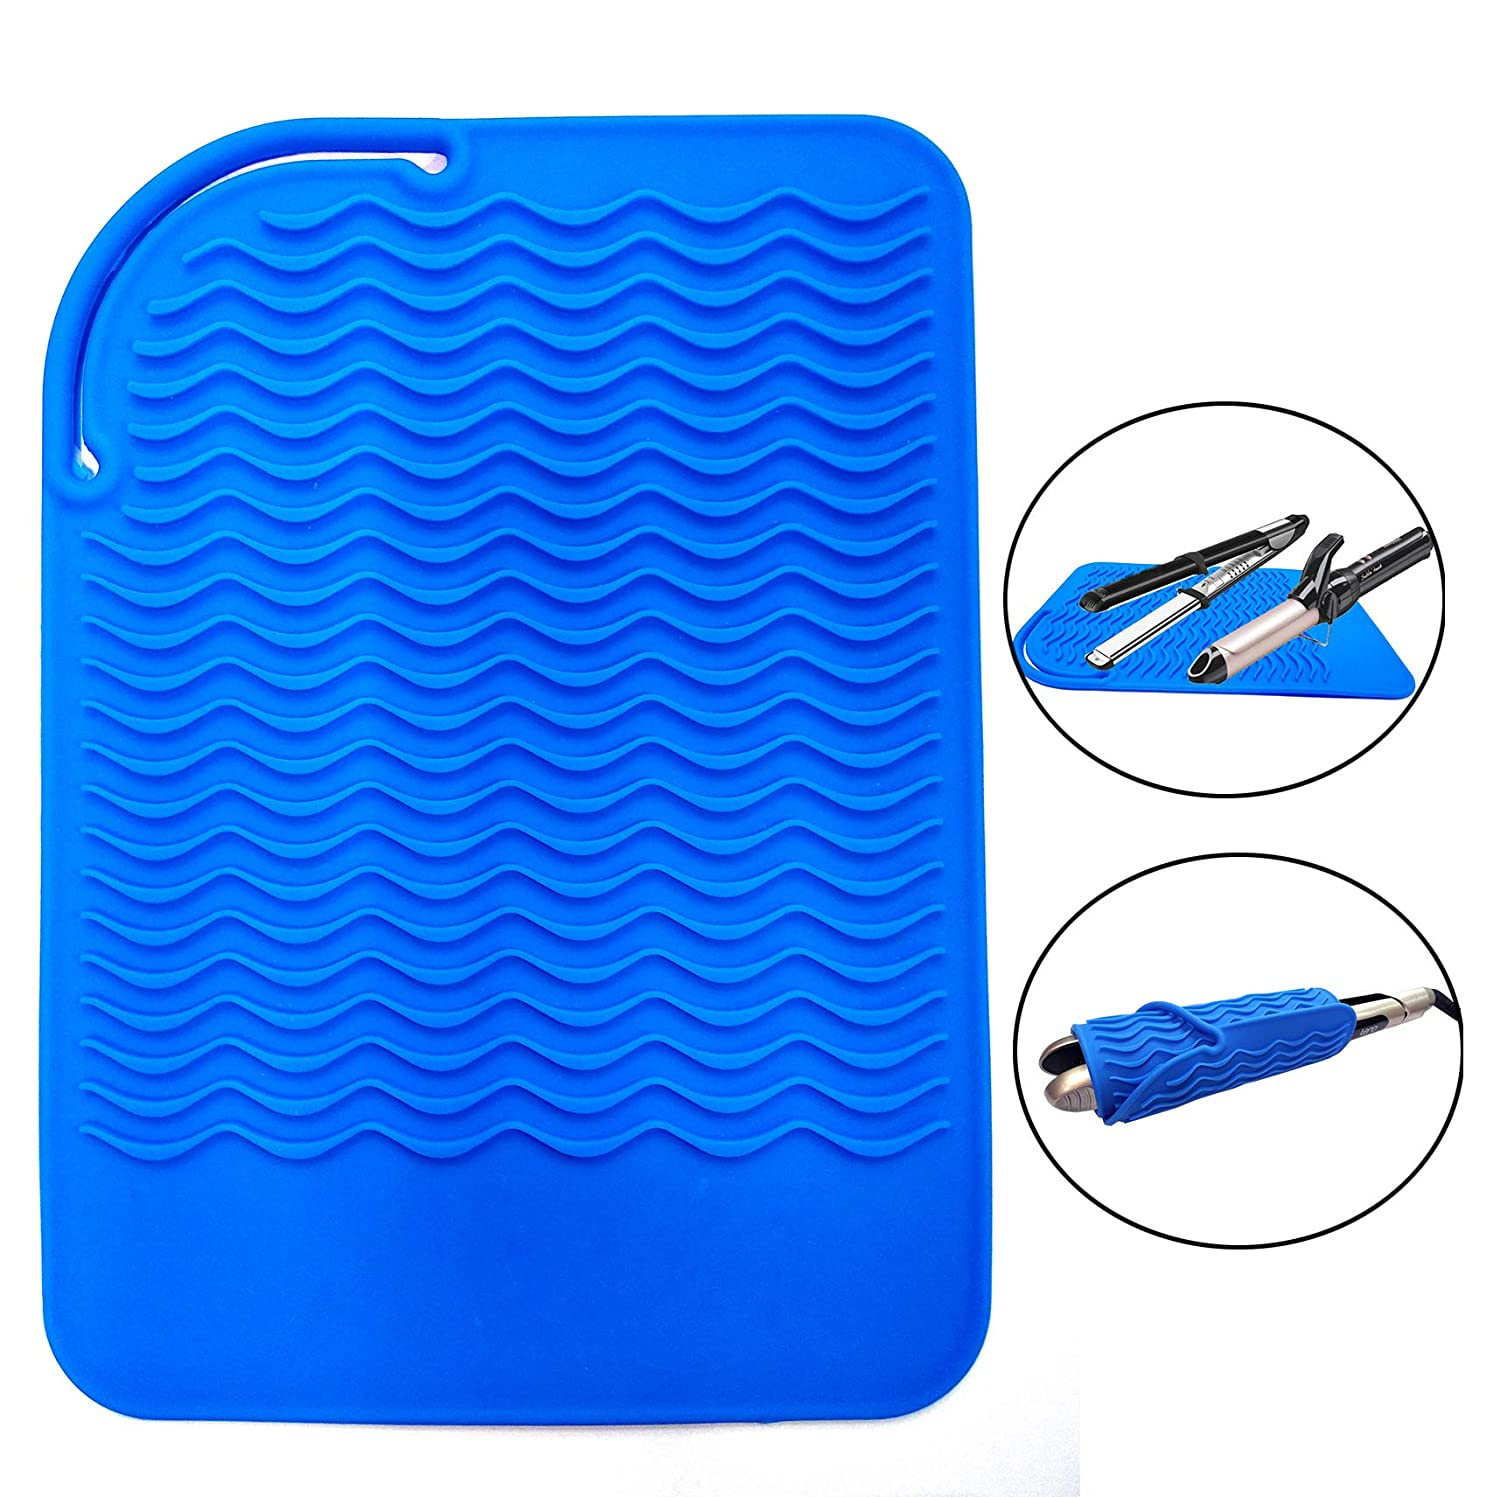 """Heat Resistant Mat for Curling Irons, Hair Straightener, Flat Irons and Hair Styling Tools 9"""" x 6.5"""", Food Grade Silicone, Blue"""